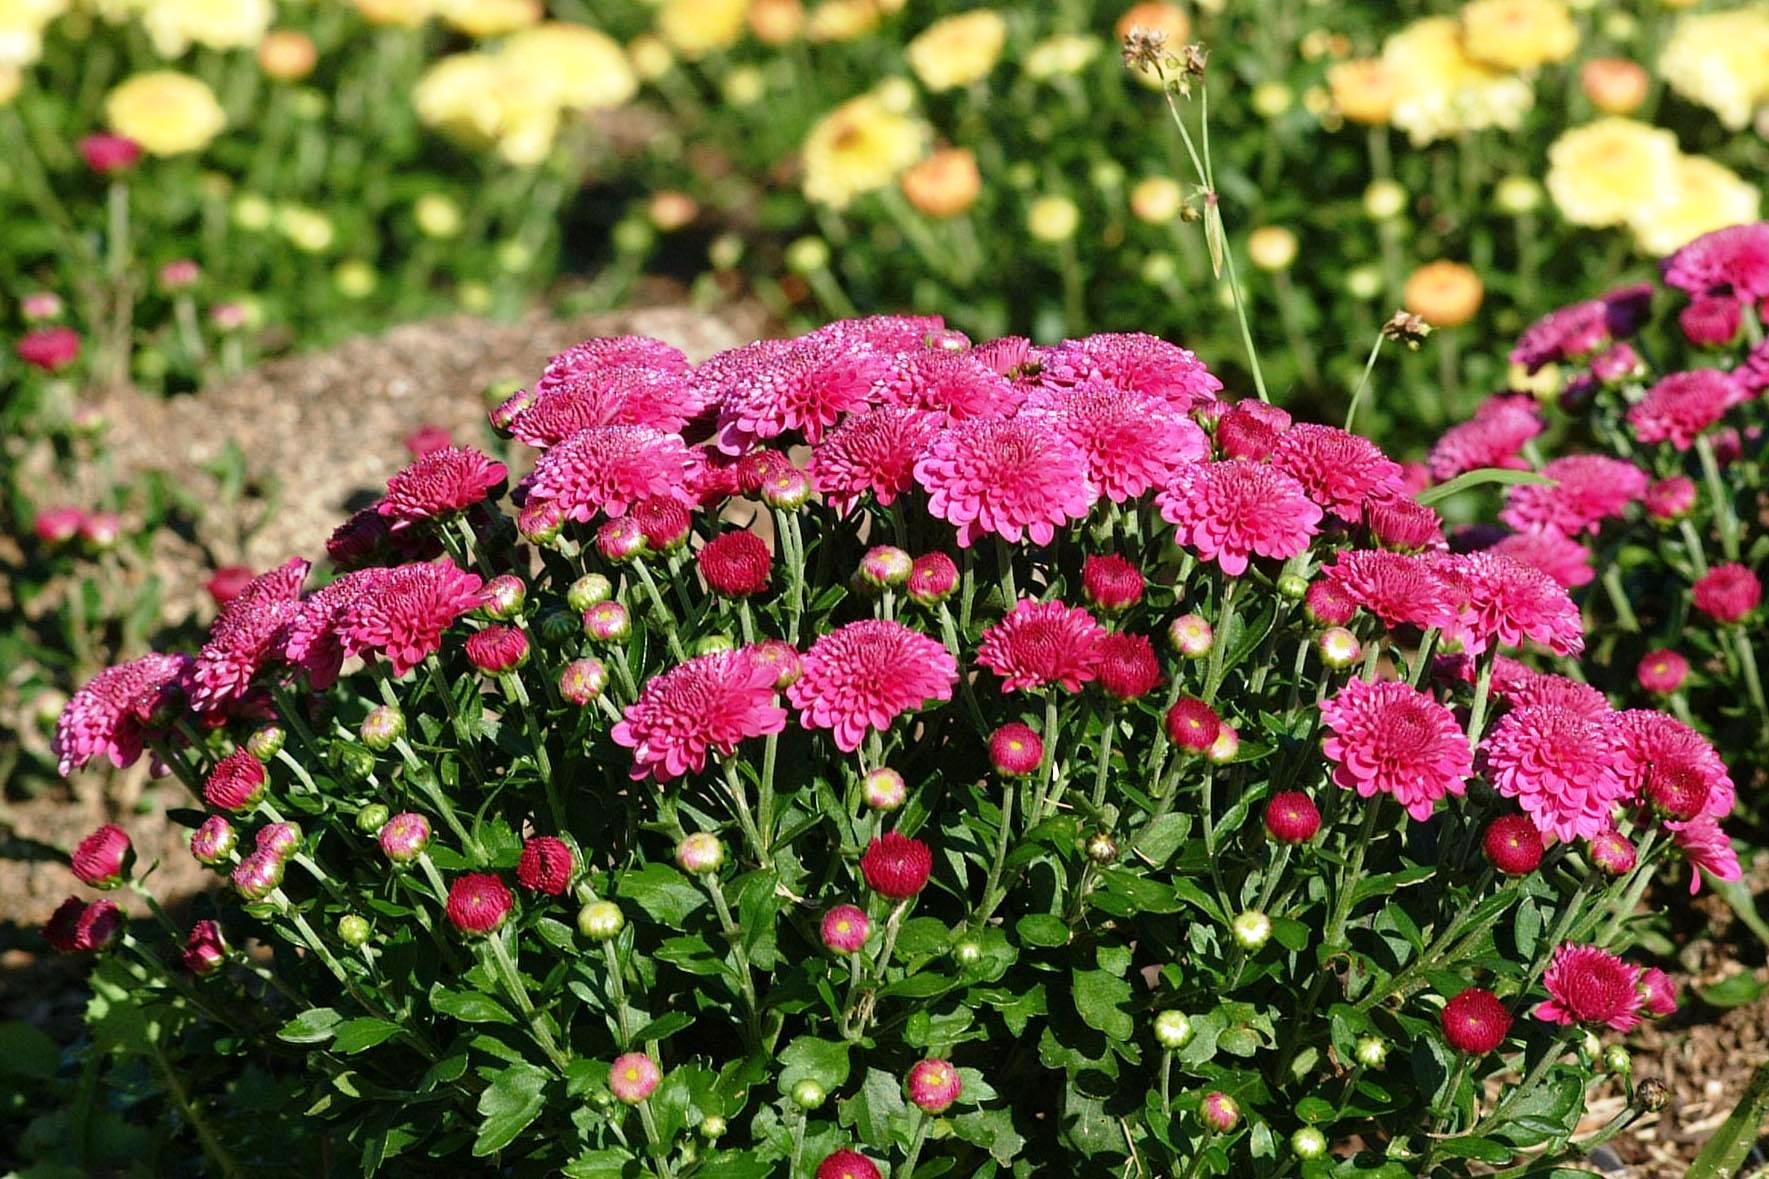 Garden mums ornamental plant of the week for september for Ornamental garden plants